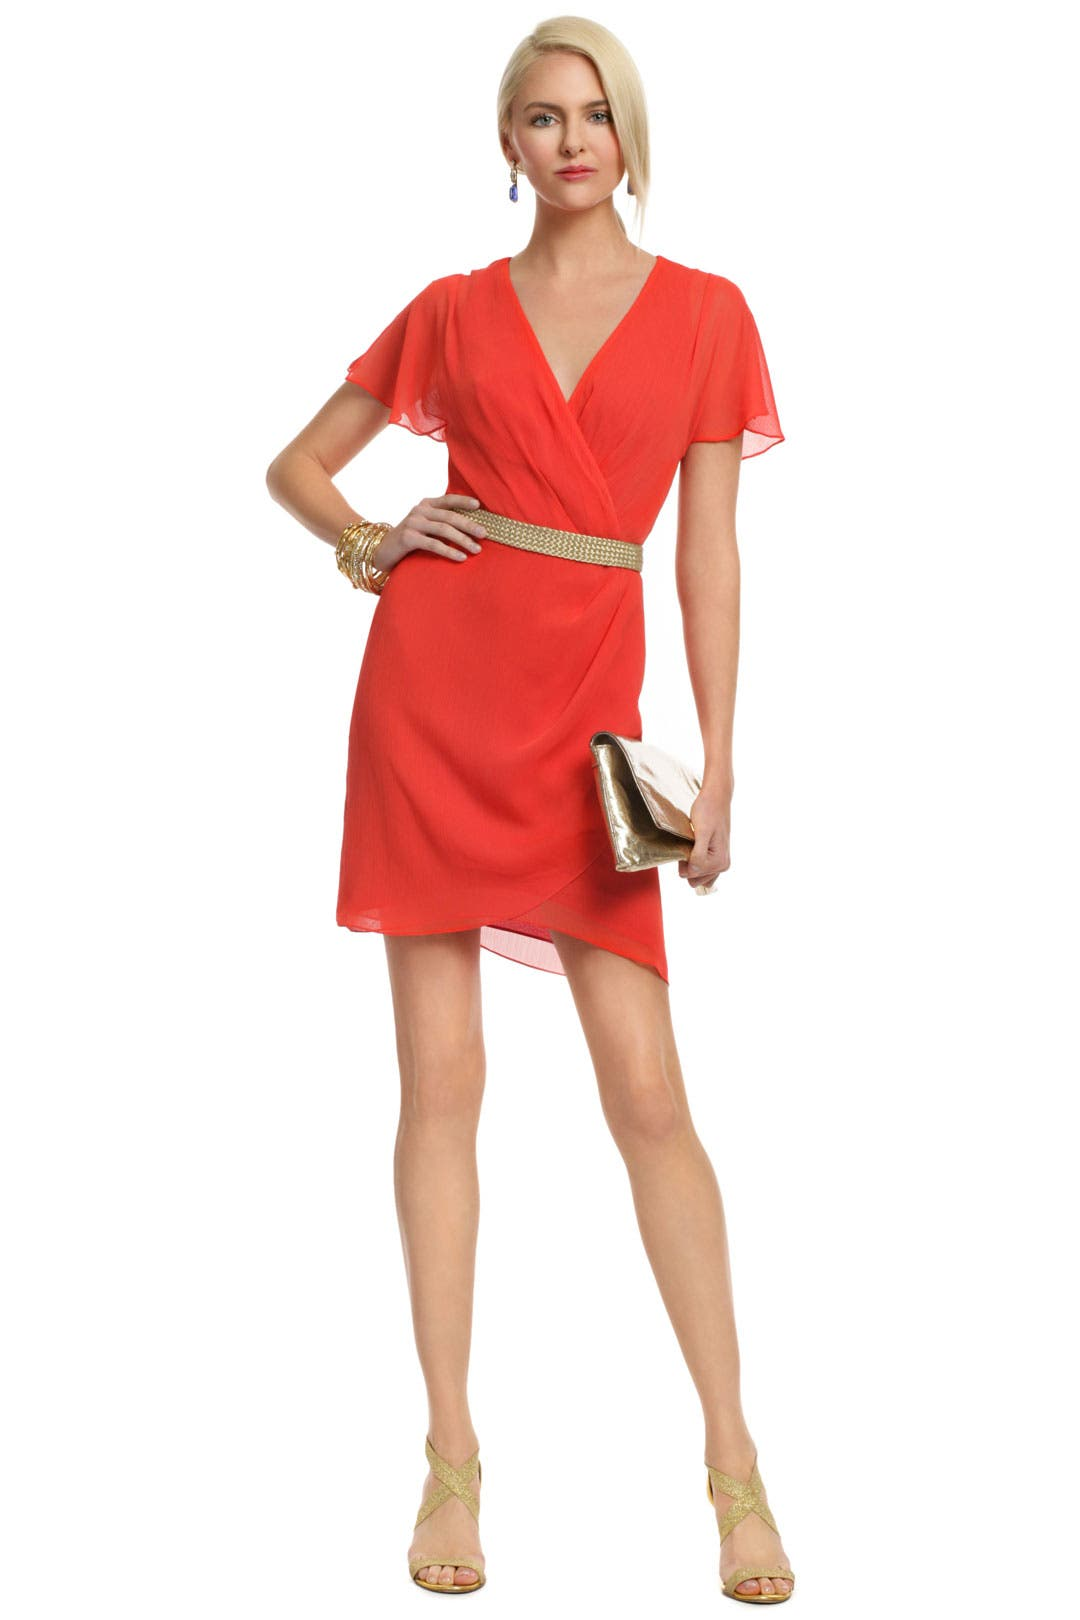 Spread Like Wildfire Dress by Mark & James by Badgley Mischka